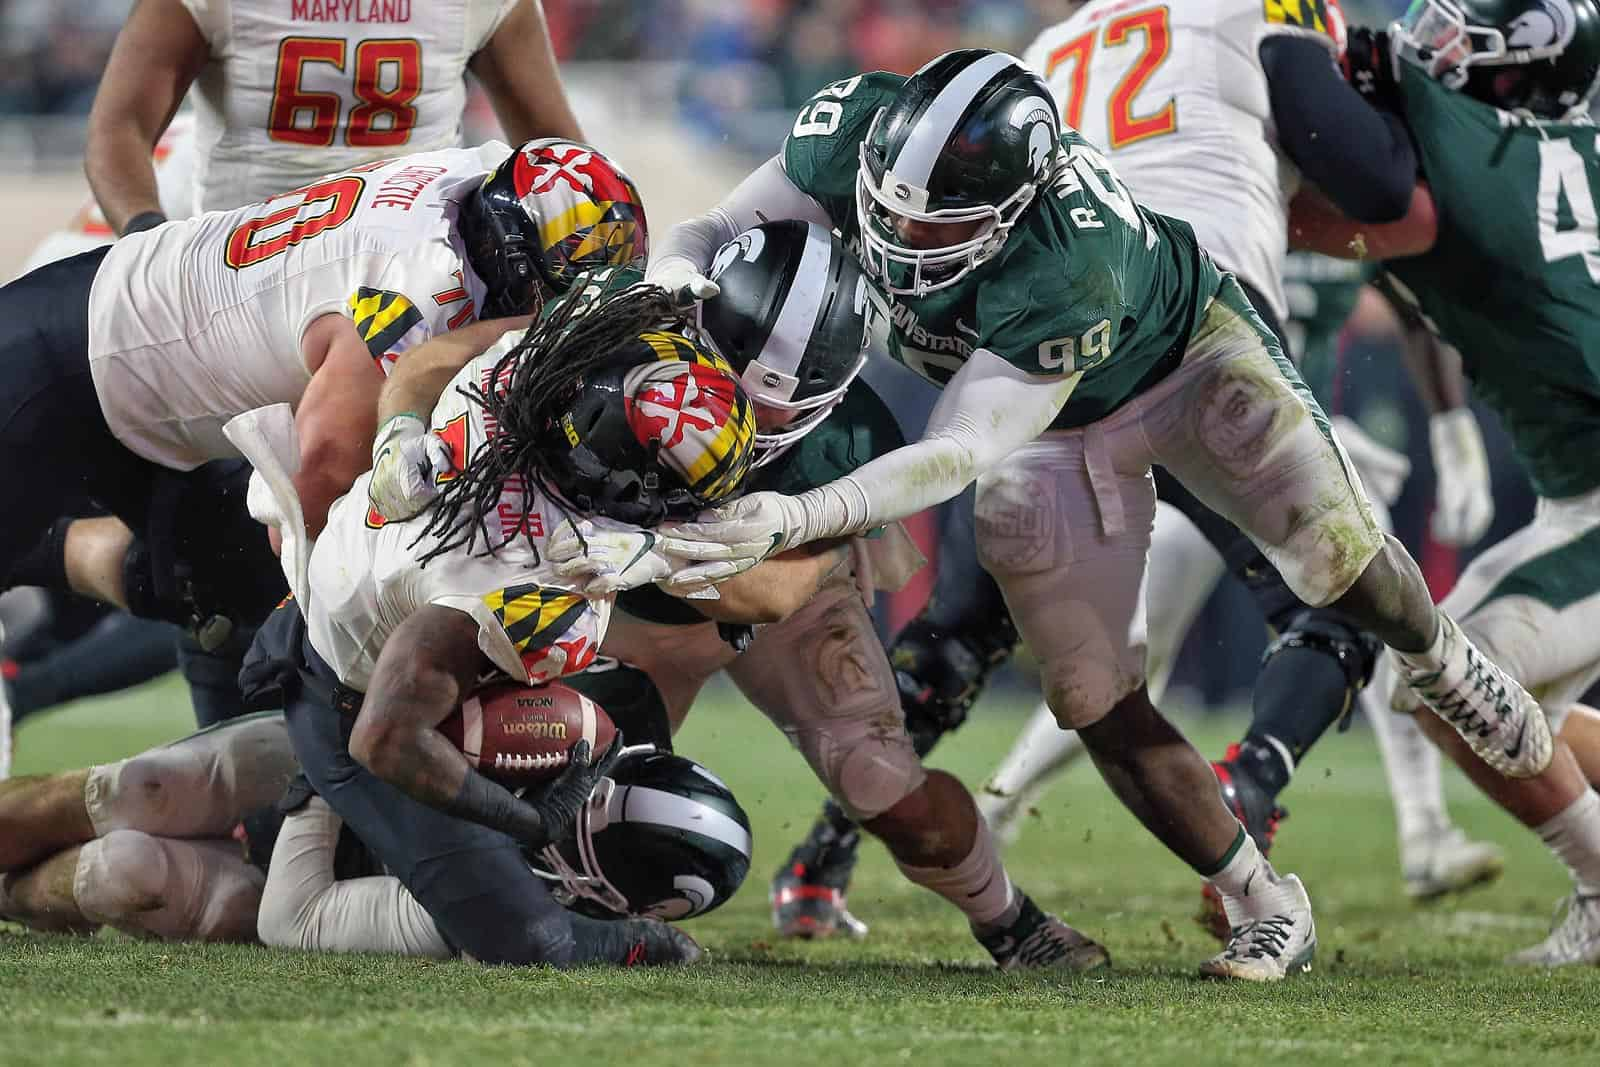 Michigan State-Maryland